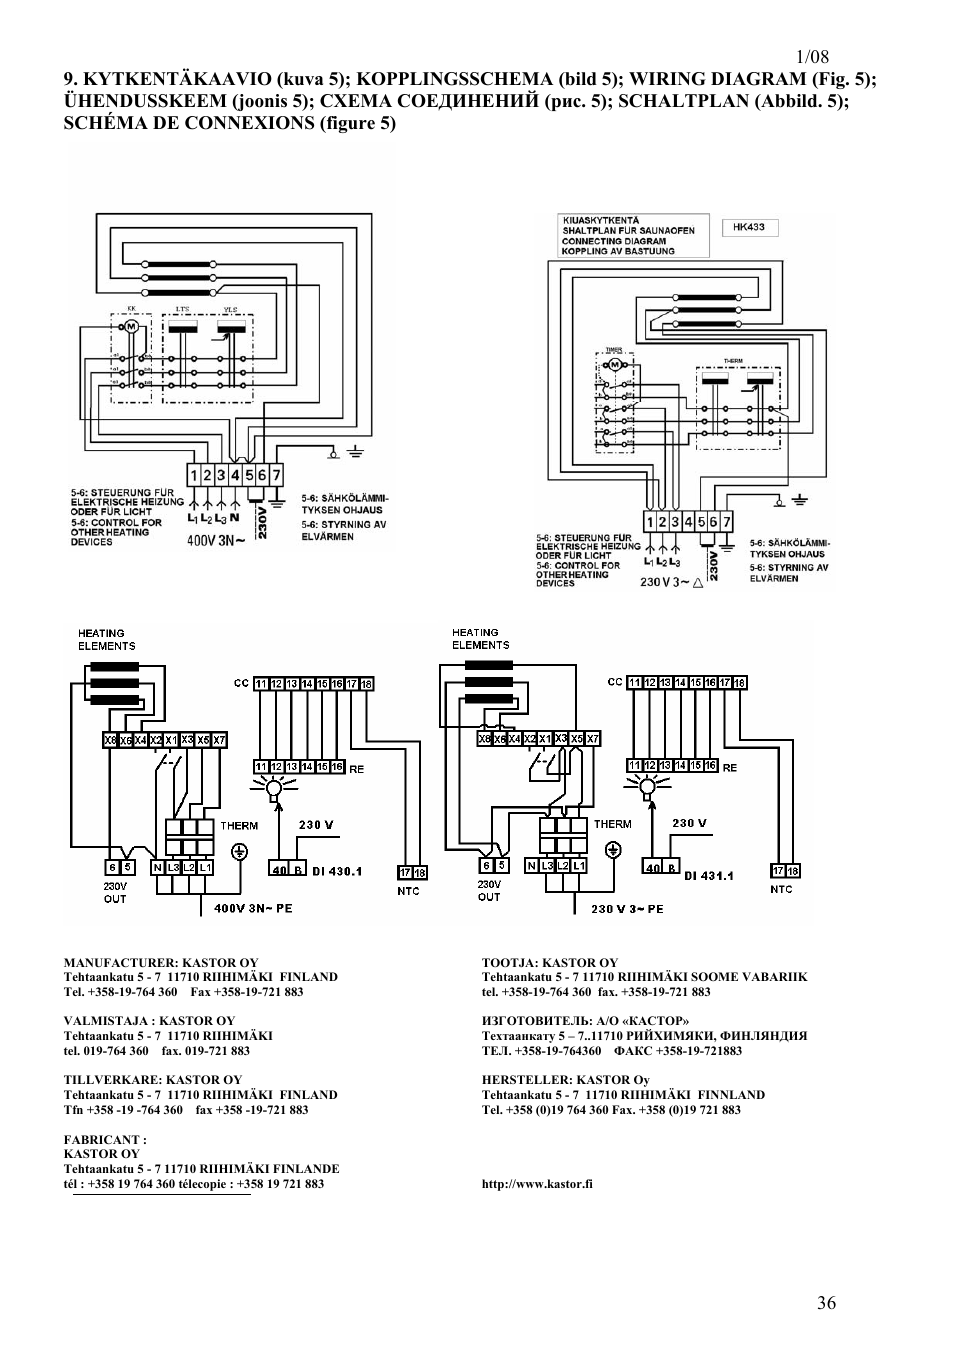 kastor viva electrical sauna stoves page36 kastor viva electrical sauna stoves user manual page 36 36 sauna wiring diagram at mifinder.co